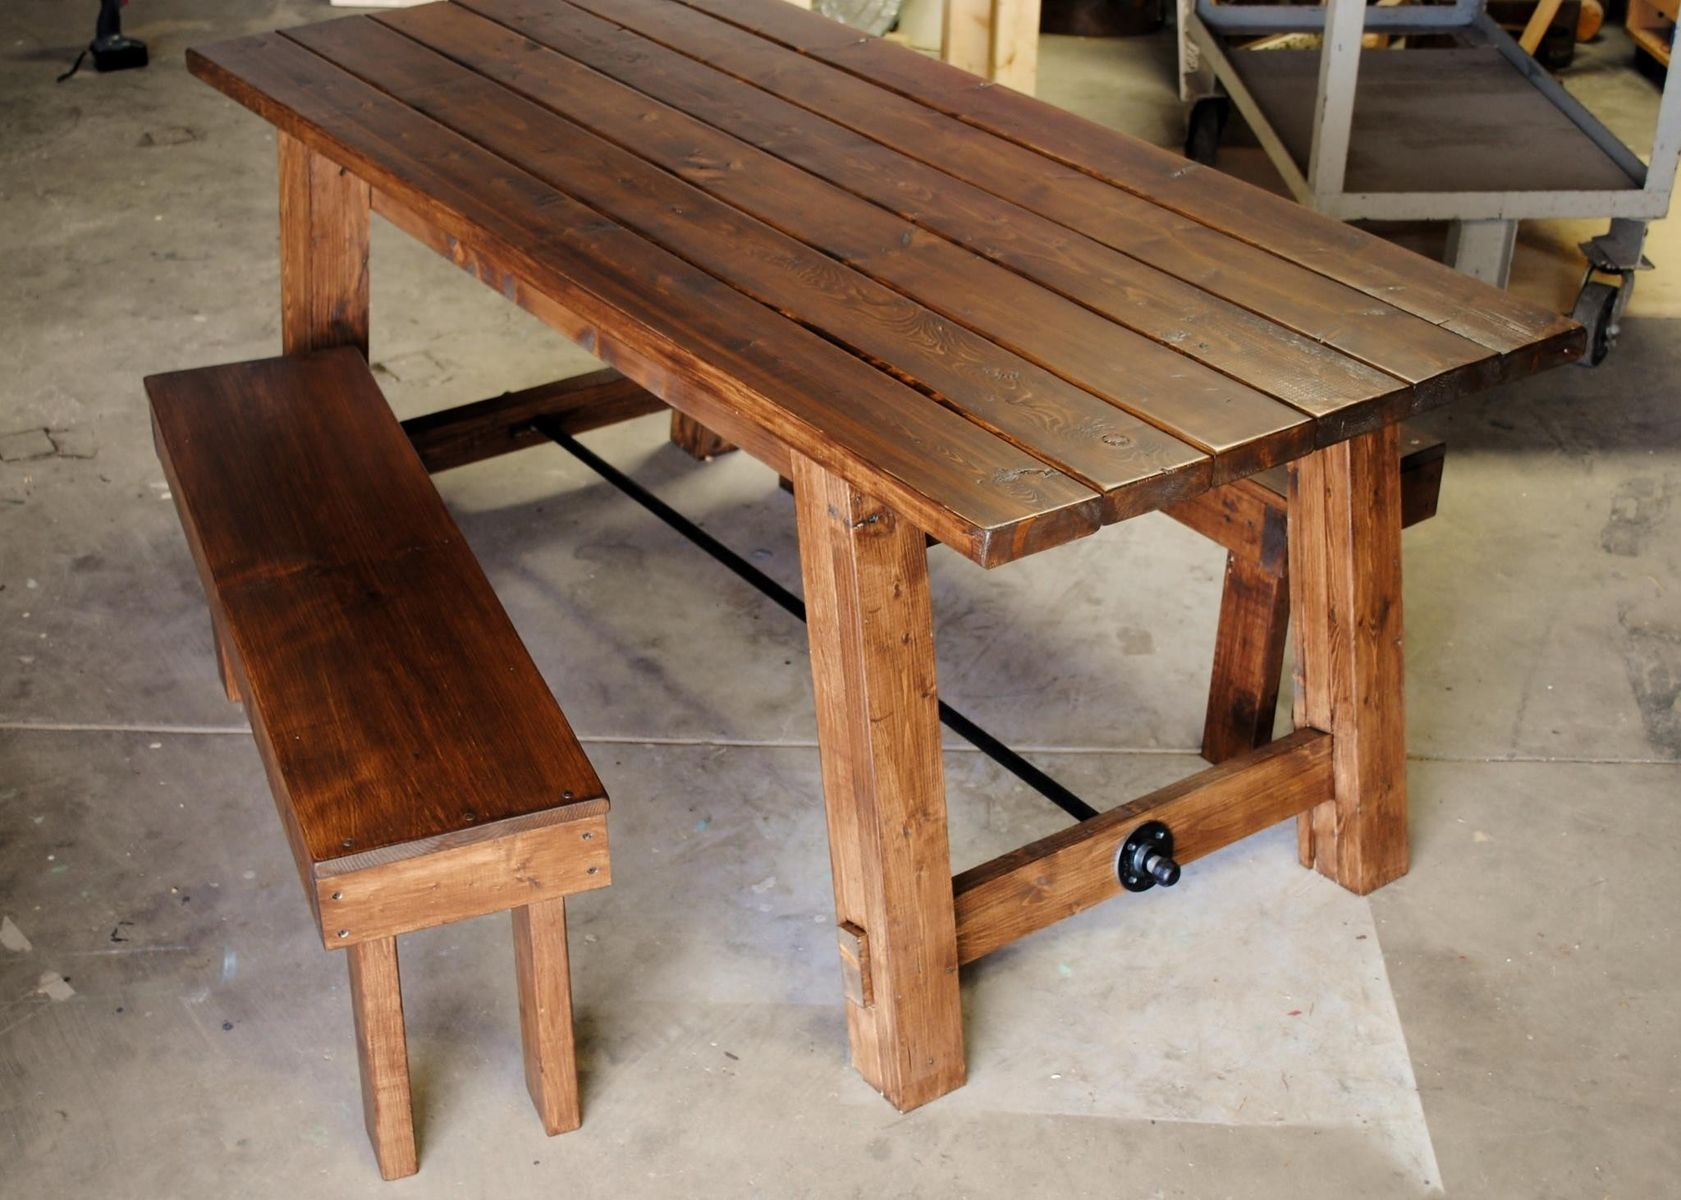 Hand Made Farmhouse Table By Sb Designs CustomMadecom